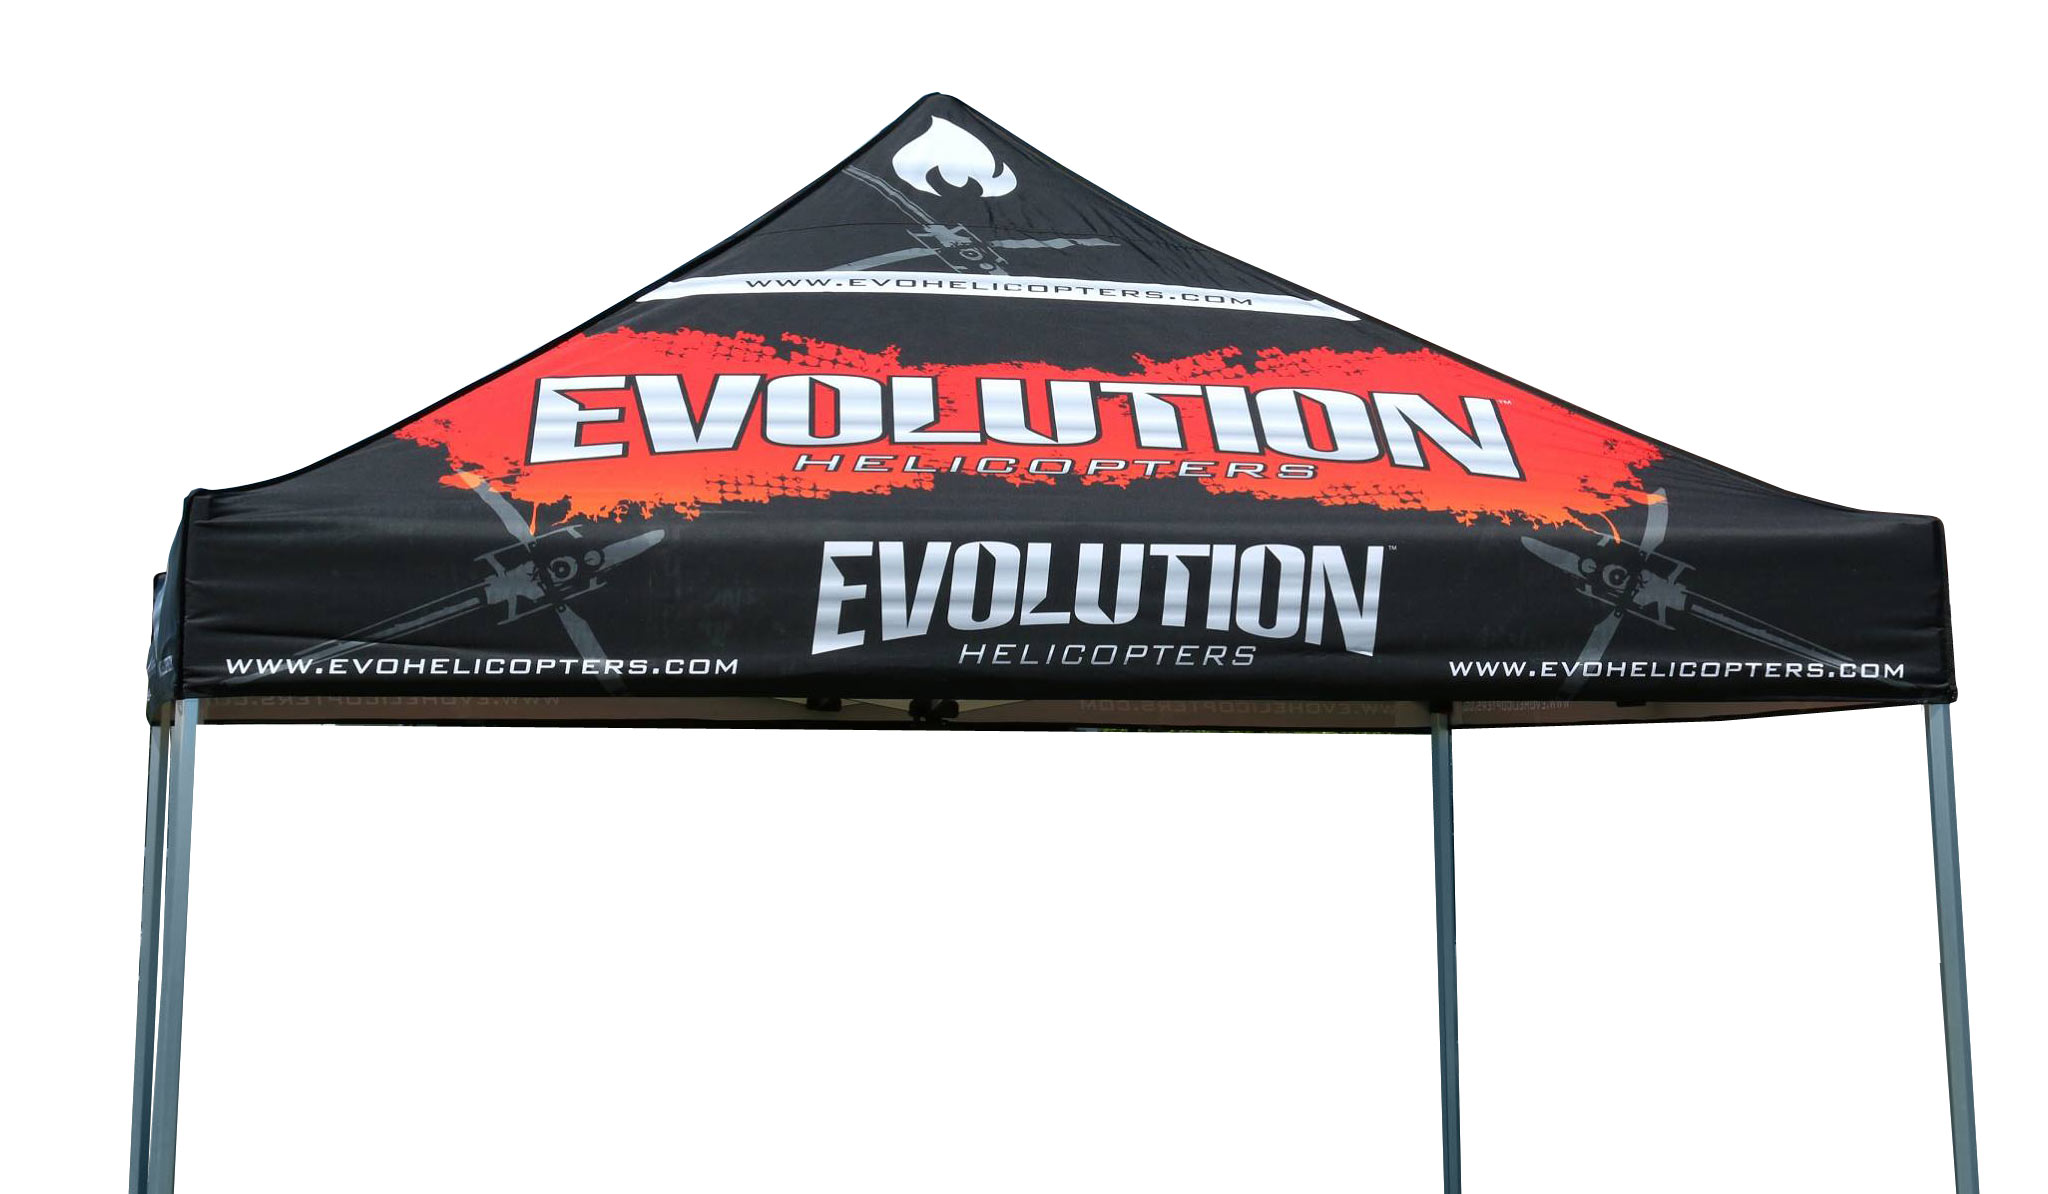 Evoloution Helicopters Pop Up Tent Design Amplified™ Graphic Design Services provided this eye catching handsome canopy for the Evolution Helicopters ...  sc 1 st  Amplified Graphic Design Services & Evolution Helicopters Promotional Tent Design - Amplified™ Graphic ...